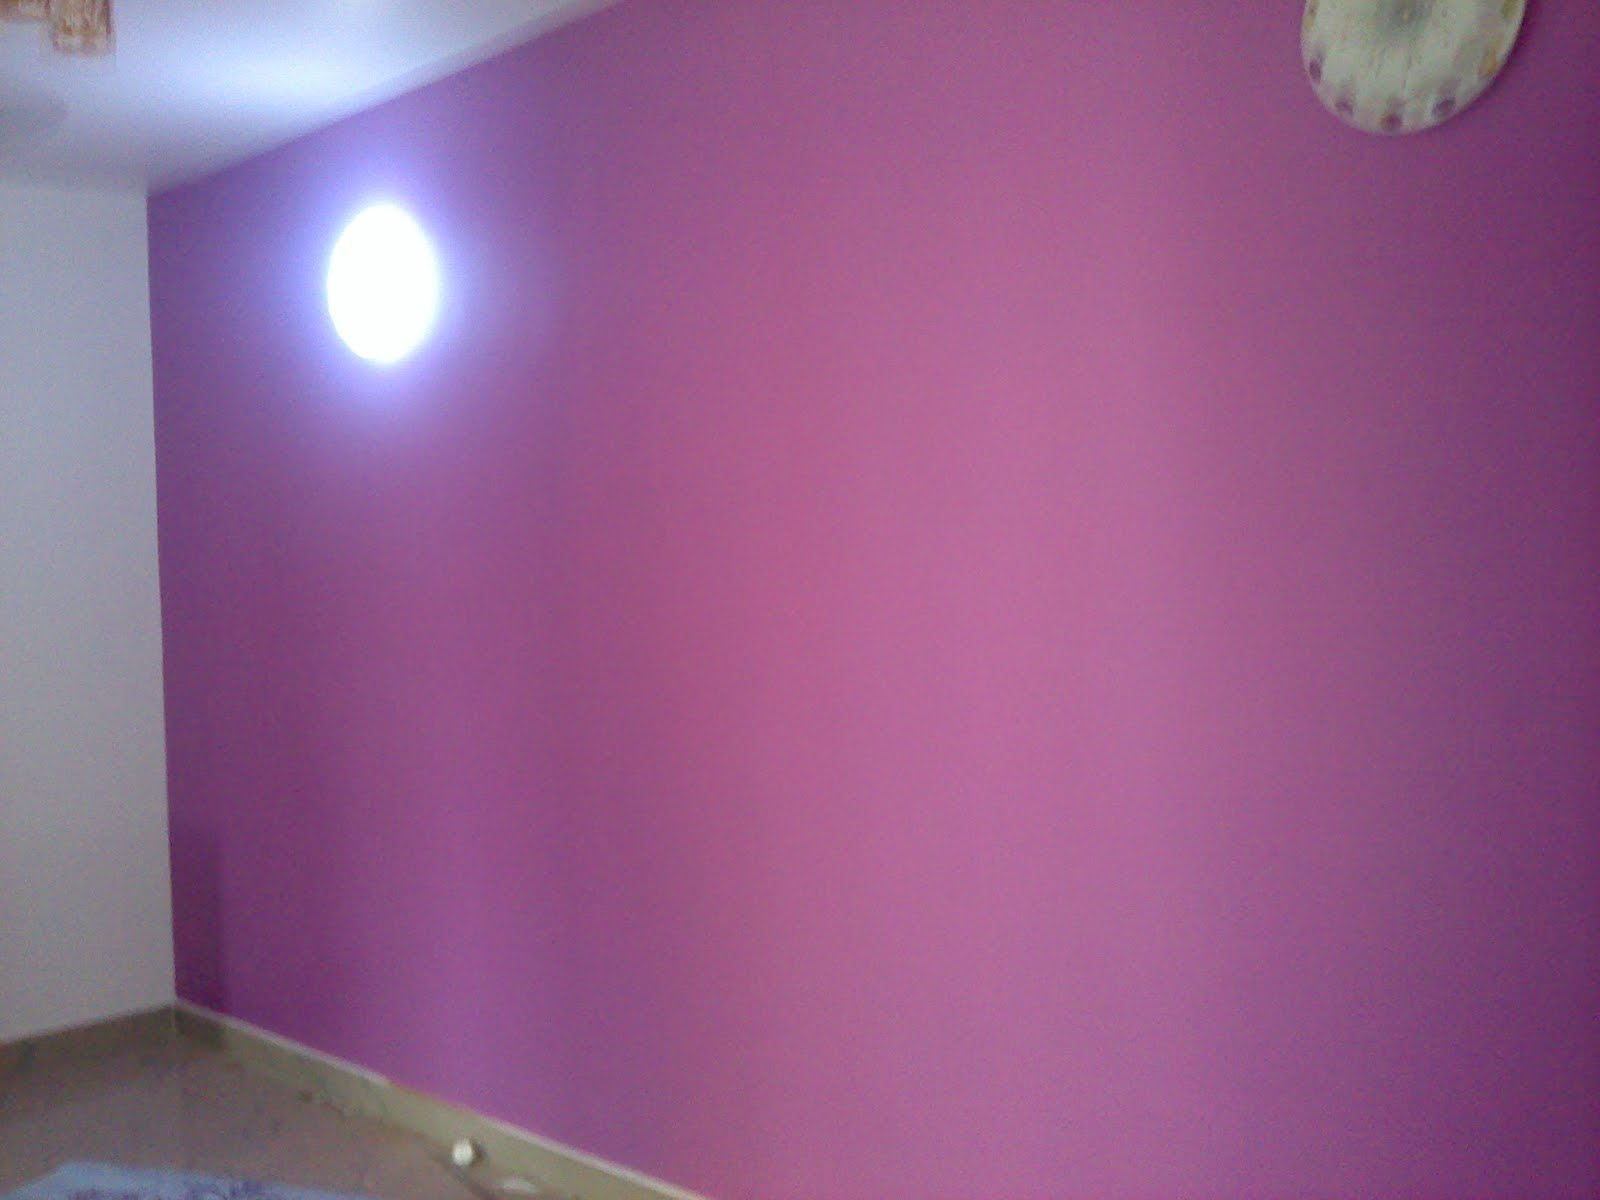 Asian Paints Royale Pink Colour Rooms Photos | Bill House Plans